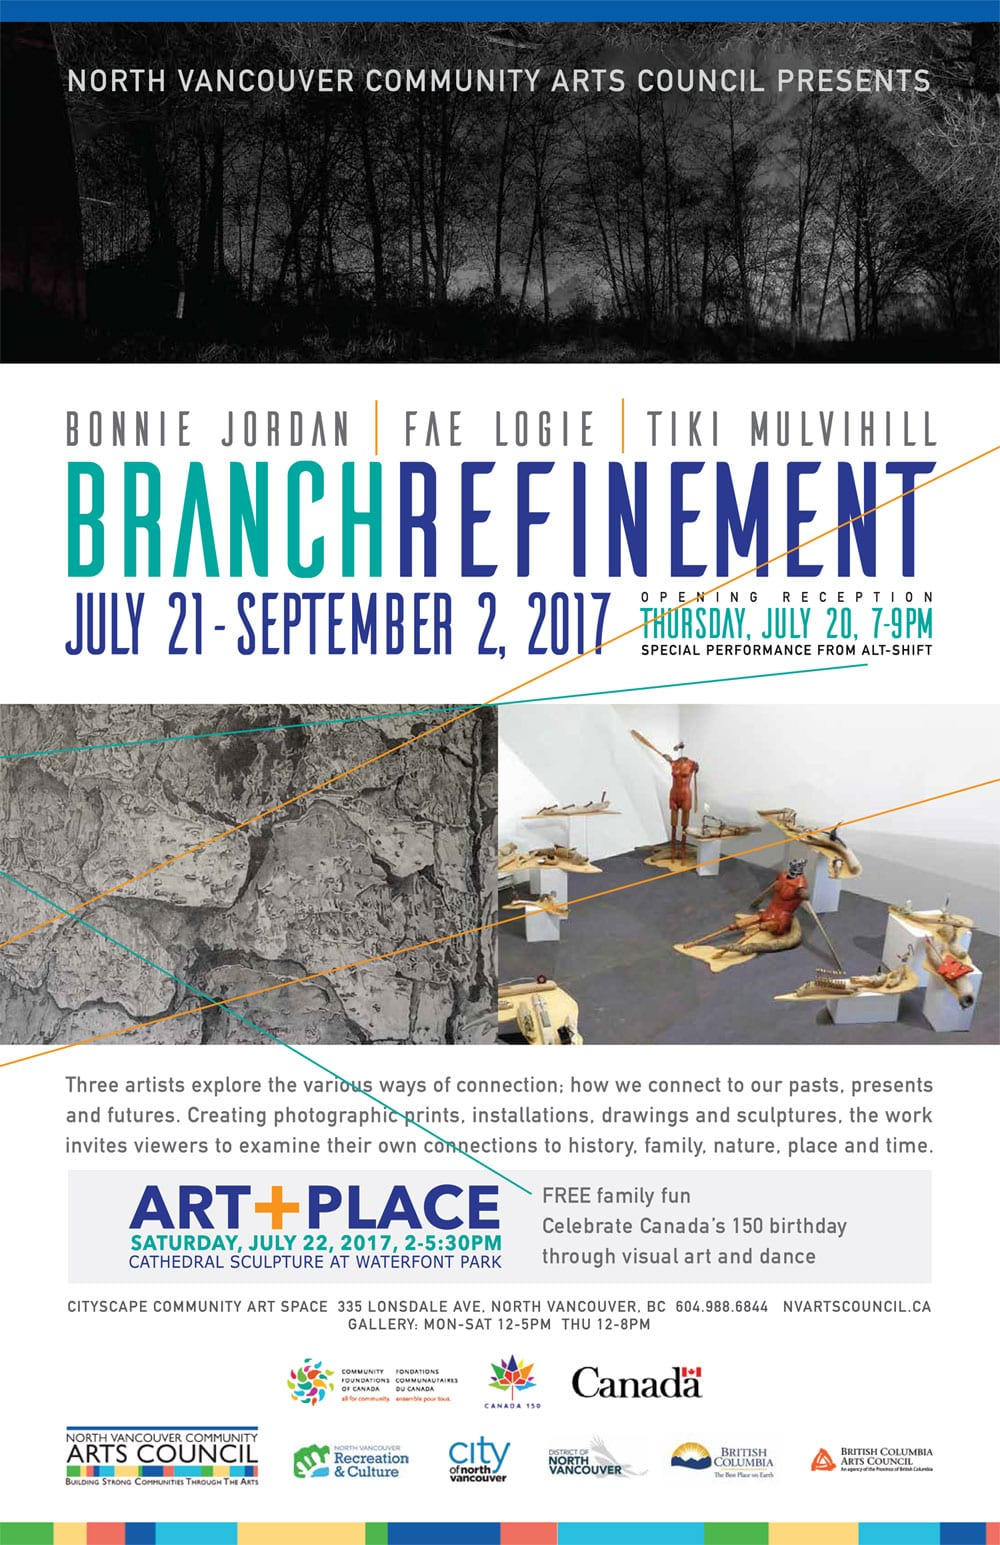 Branch Refinement at the Cityscape Community Art Space North Vancouver